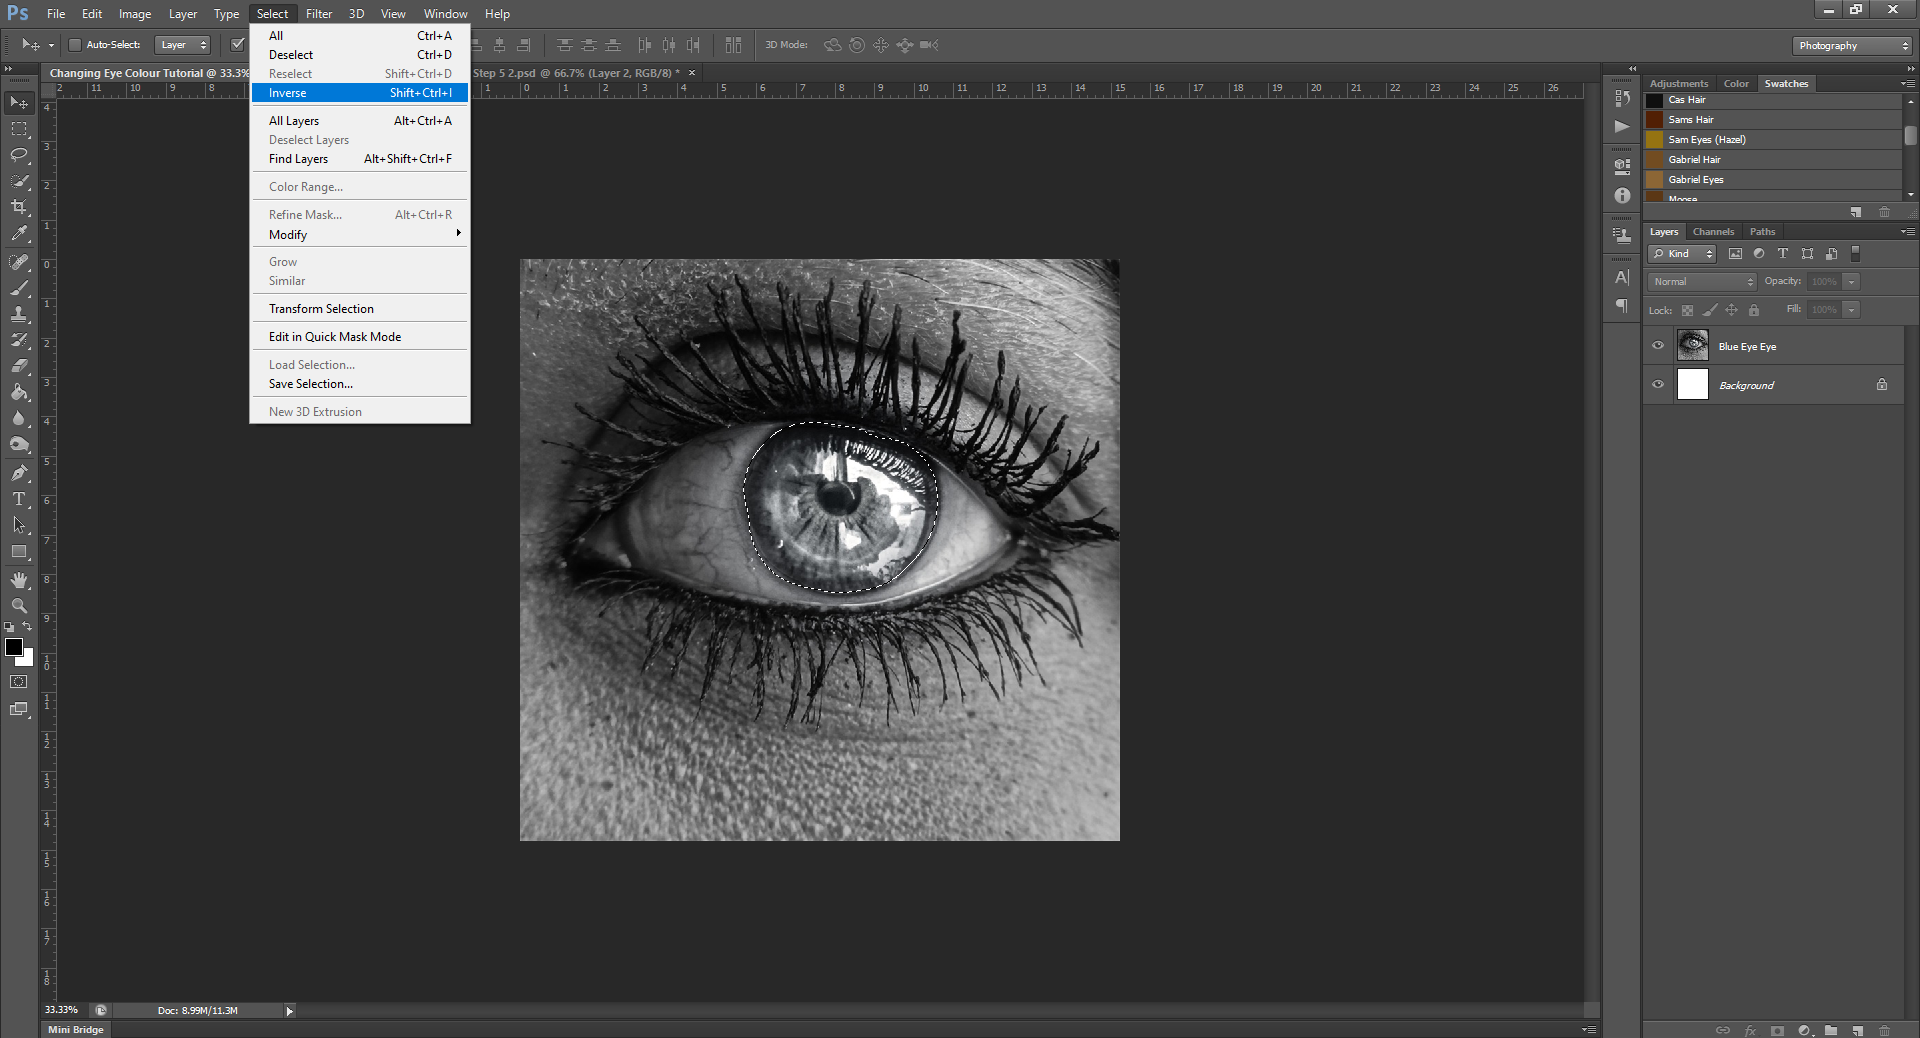 AterImber.com - Writing Tips - Photoshop Tutorial Series - PHSH Effect 15 Changing Eye/Skin Colour - Step 6 - phsh, phsh effect, phsh tutorial, tutorial, photoshop tutorial, indie author help, book covers, writing tips